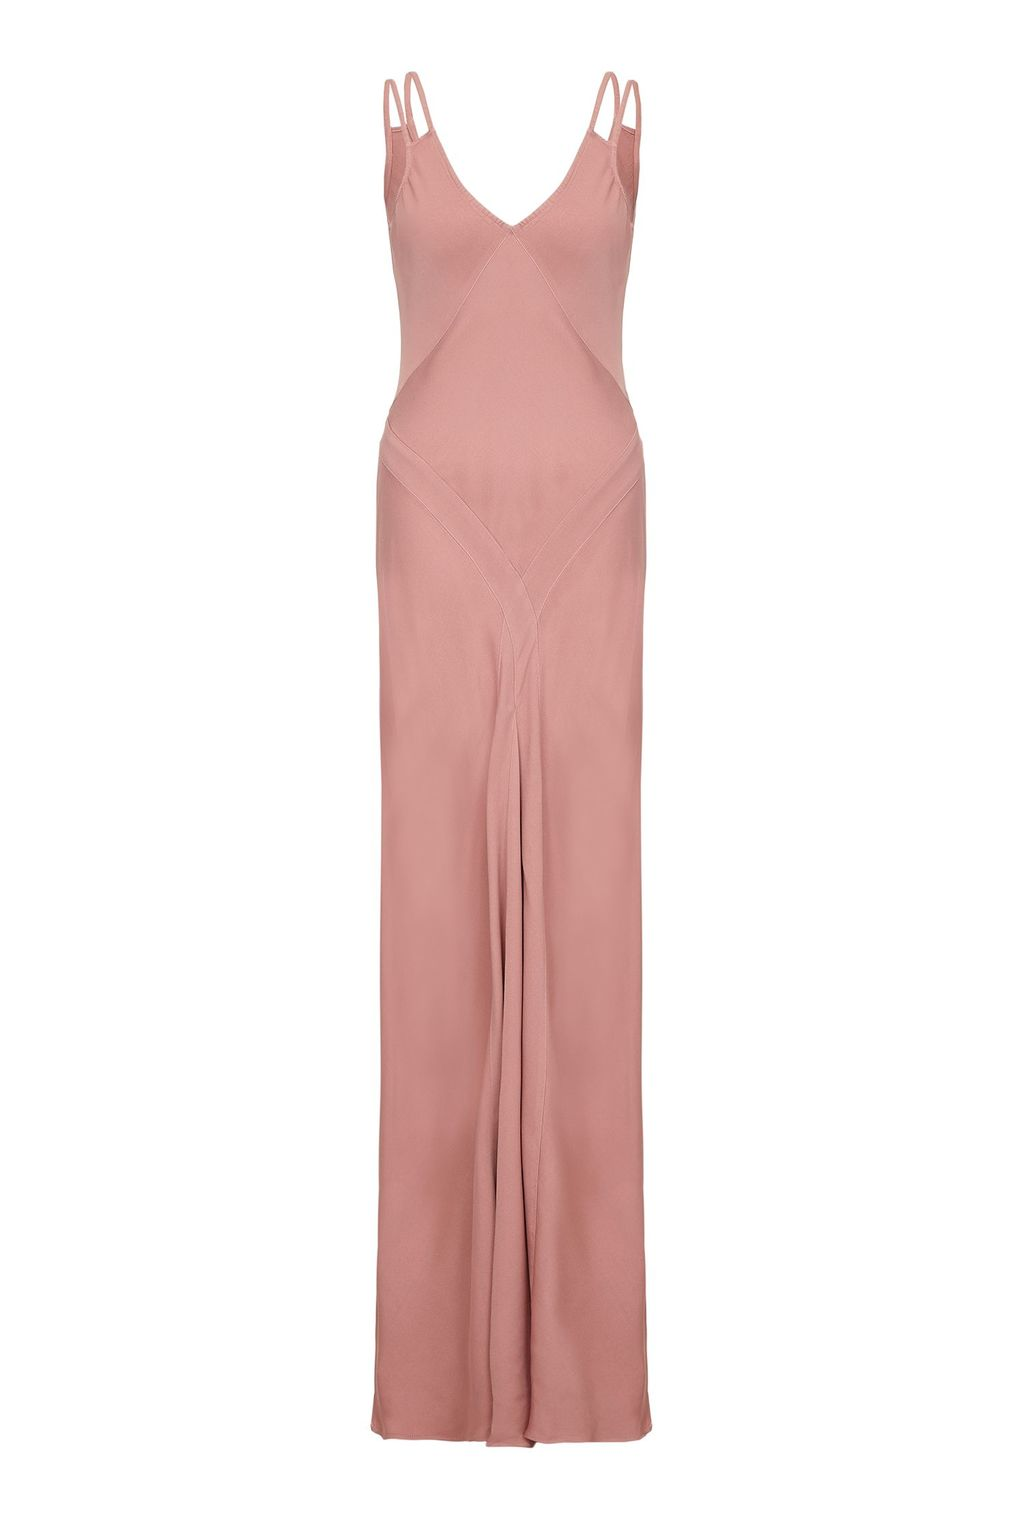 Mina Dress Rose Dawn, Pink - neckline: low v-neck; sleeve style: spaghetti straps; pattern: plain; style: maxi dress; predominant colour: pink; length: floor length; fit: body skimming; fibres: viscose/rayon - 100%; occasions: occasion; sleeve length: sleeveless; texture group: silky - light; pattern type: fabric; season: s/s 2016; wardrobe: event